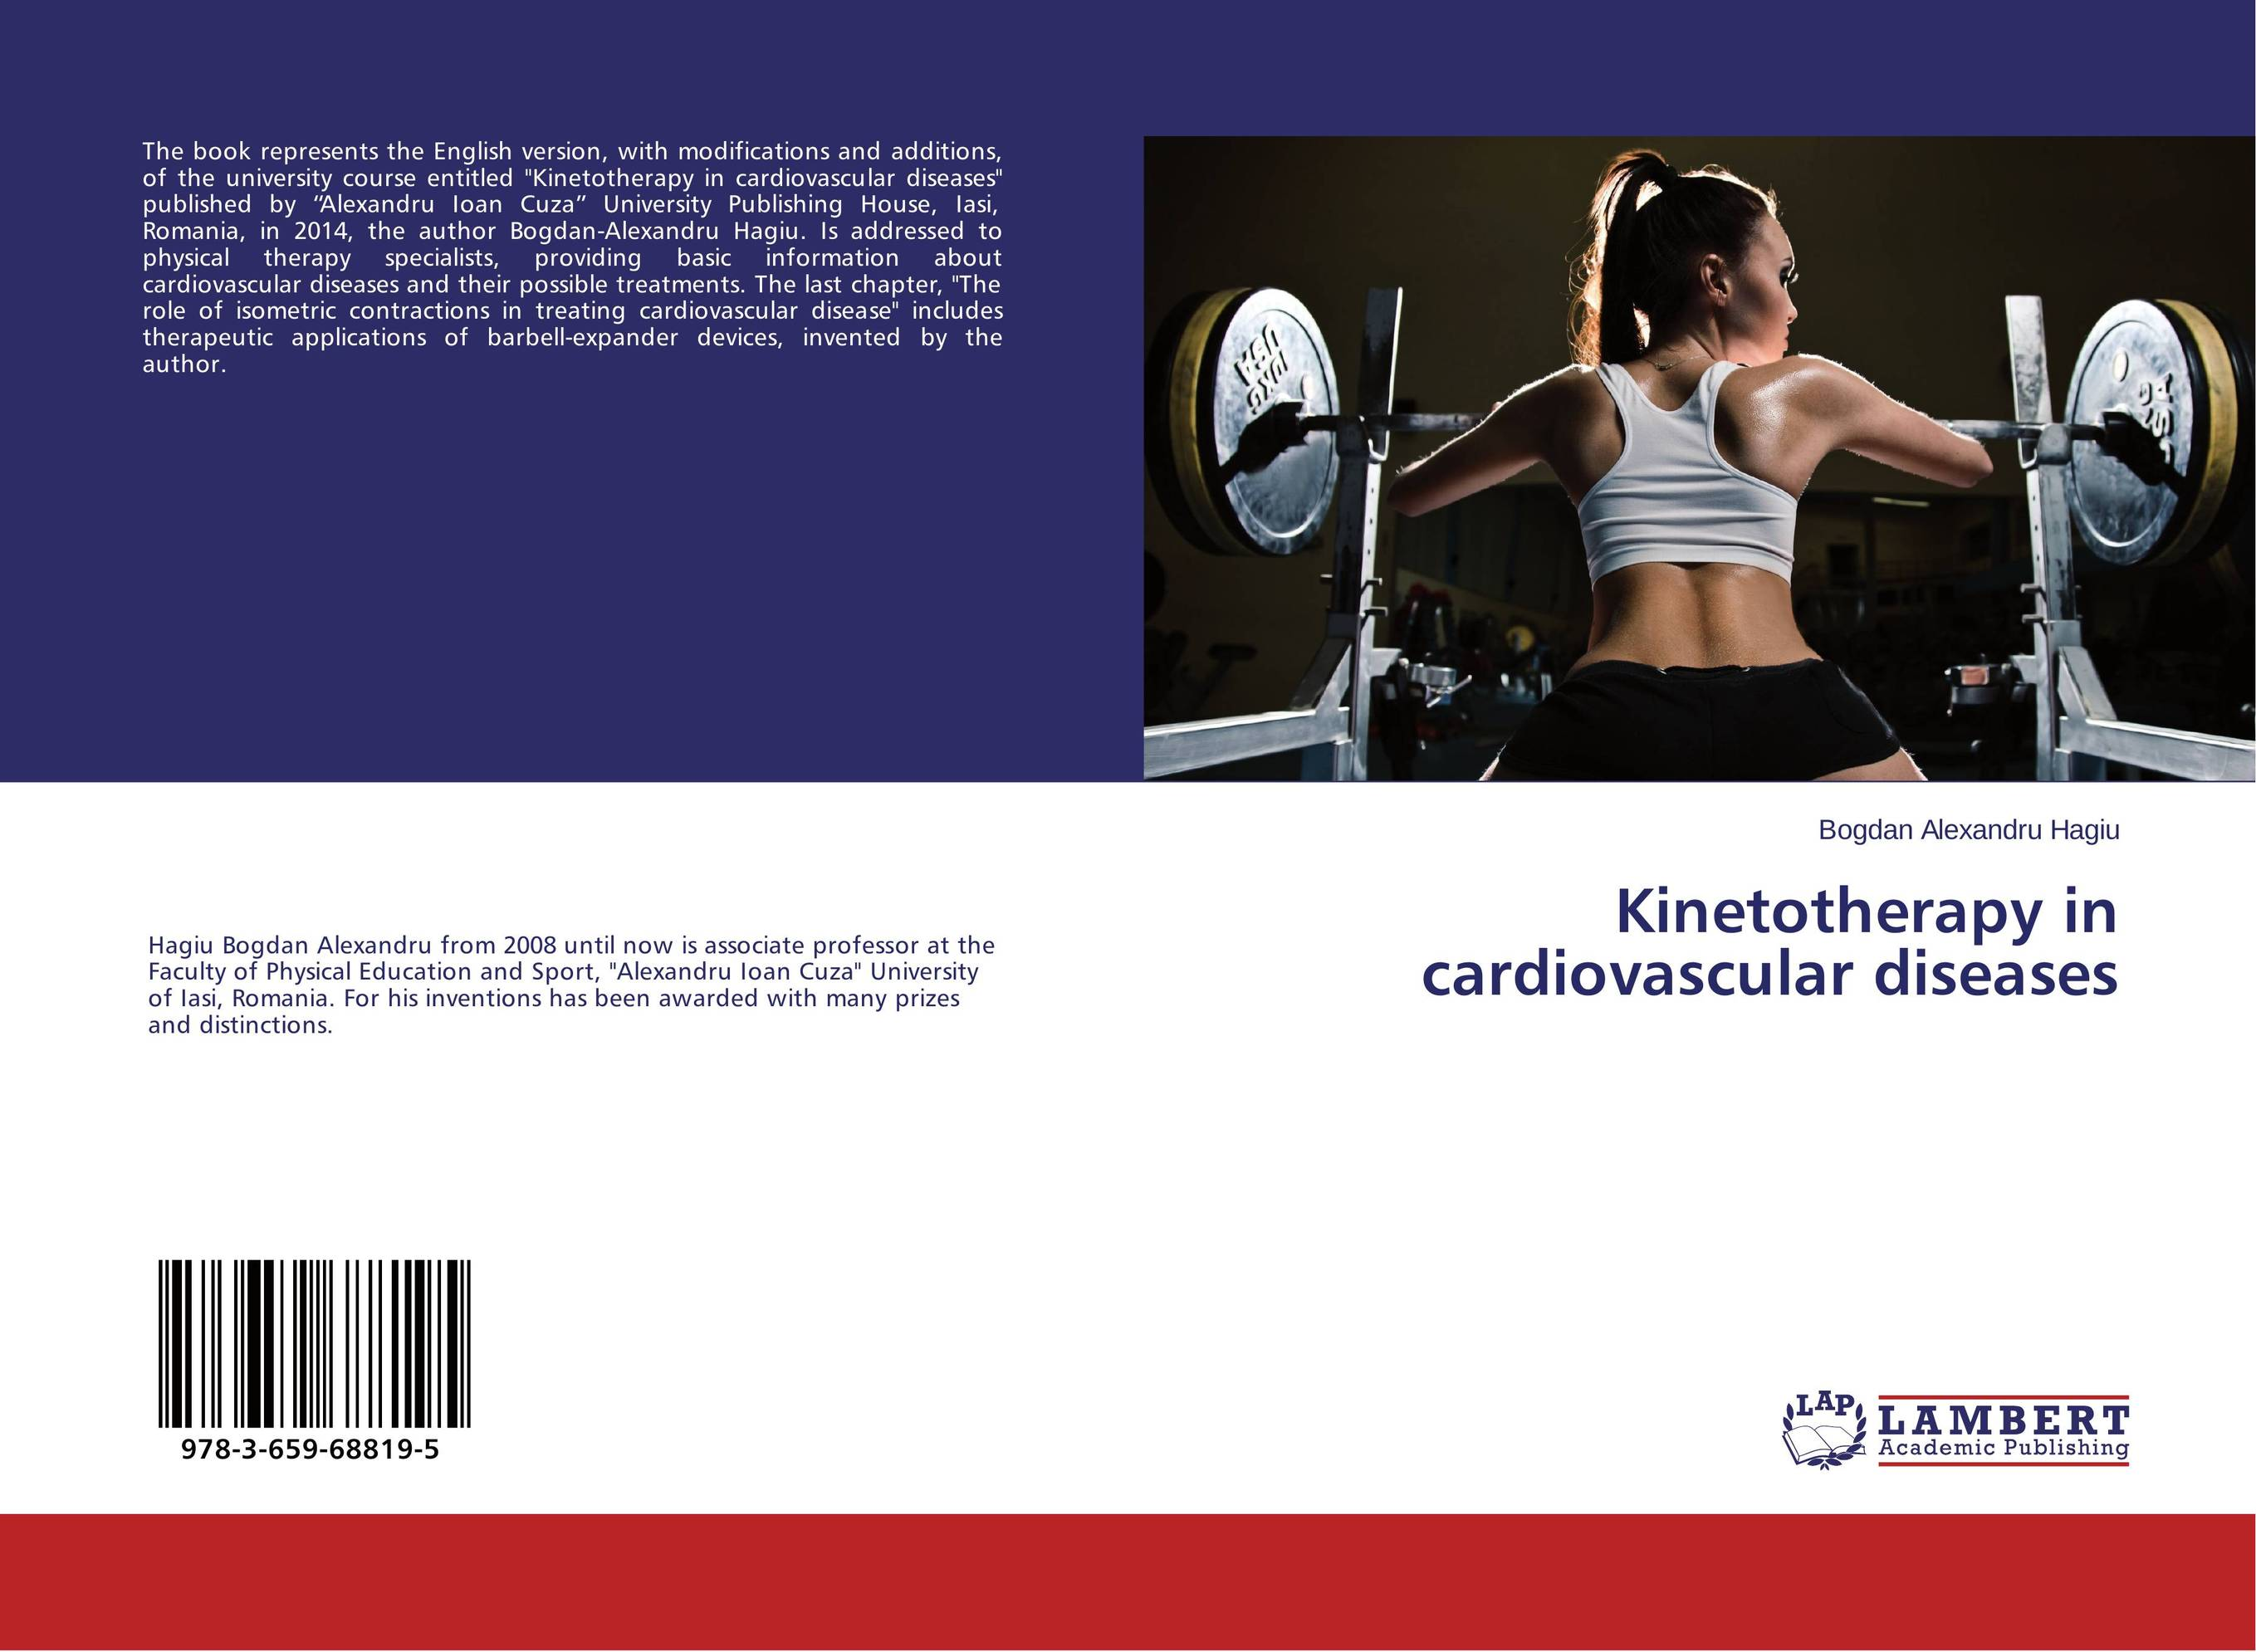 Kinetotherapy in cardiovascular diseases cardiovascular diseases in the usa